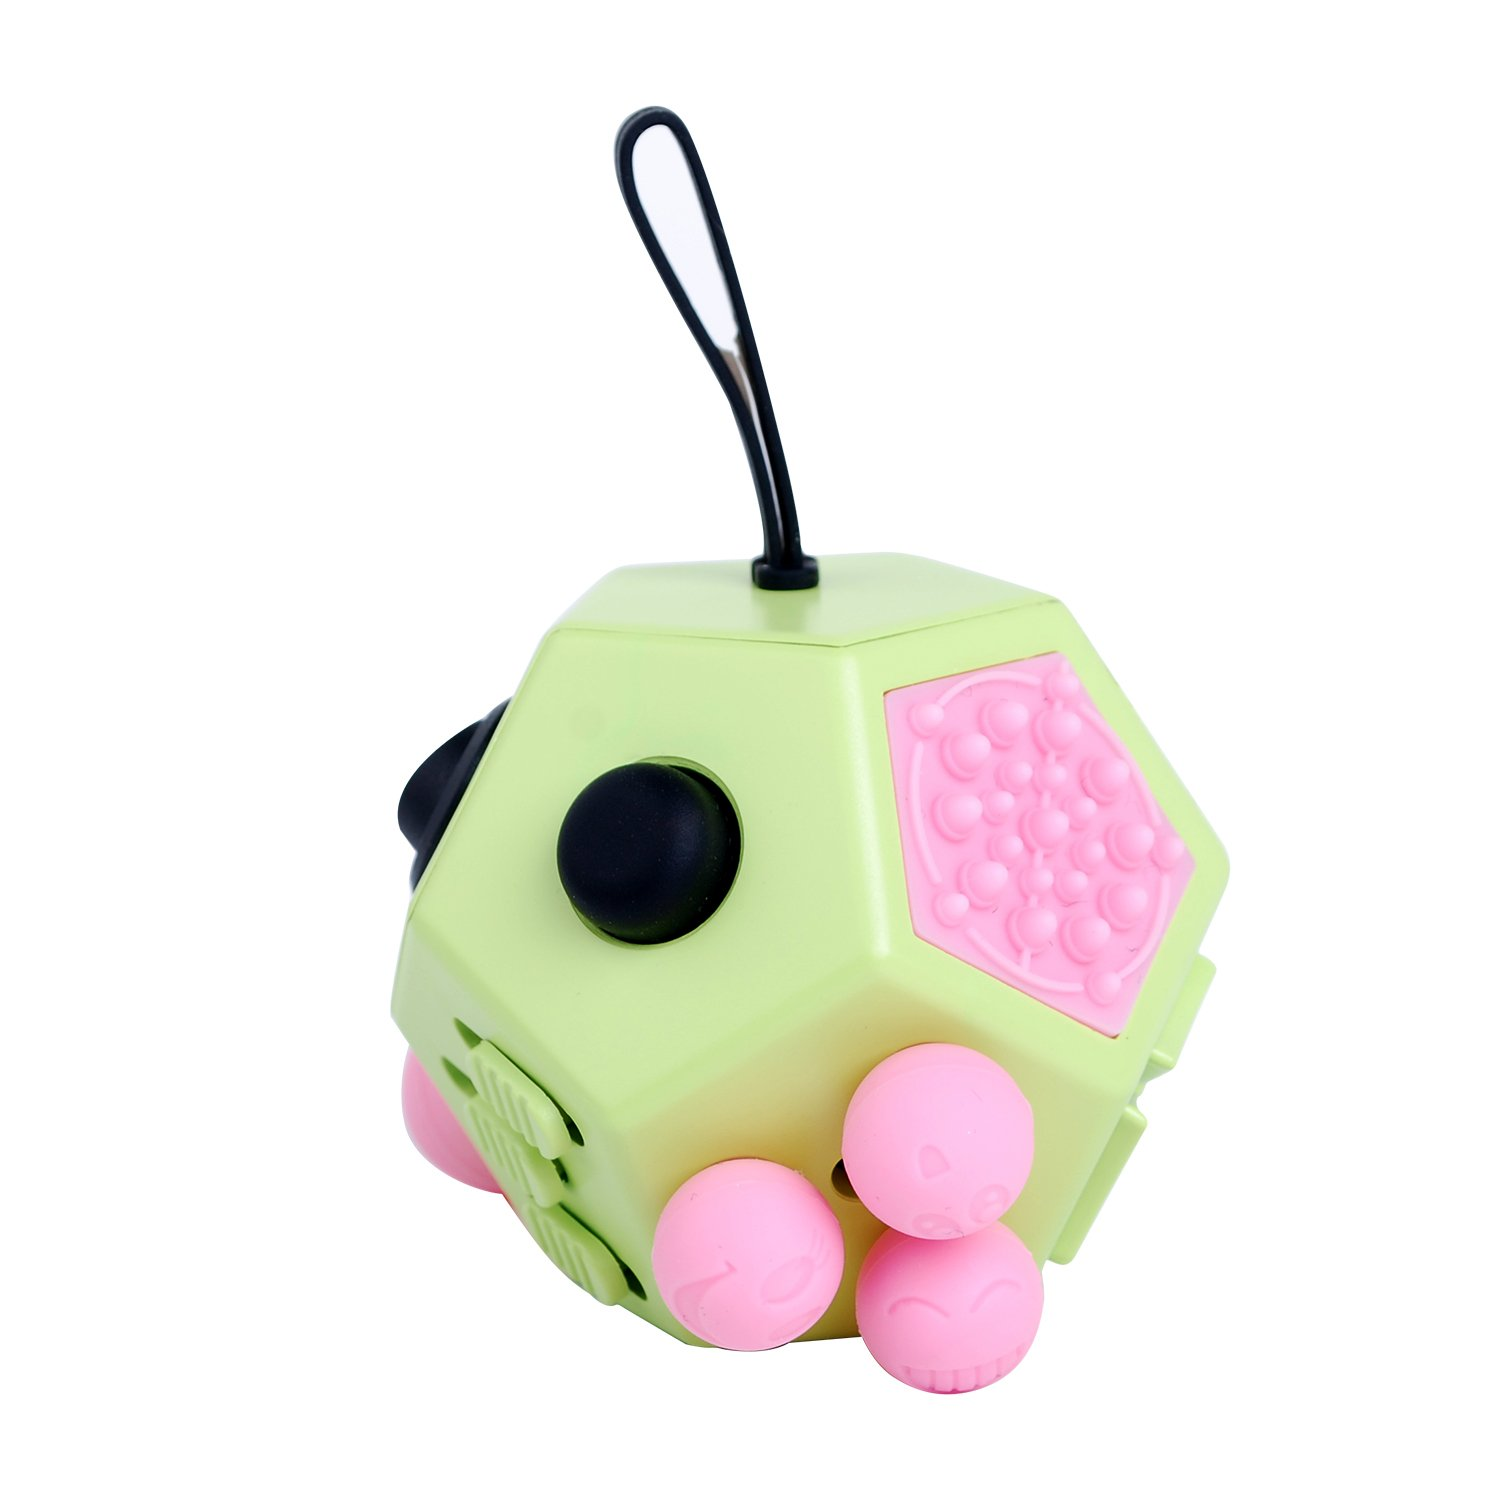 Fidget Cube Toys, Relieves Stress and Increases Focus for Adults and Children with ADHD ADD OCD Autism - 12 Sides Fidget Dice (Green) by BSL (Image #4)